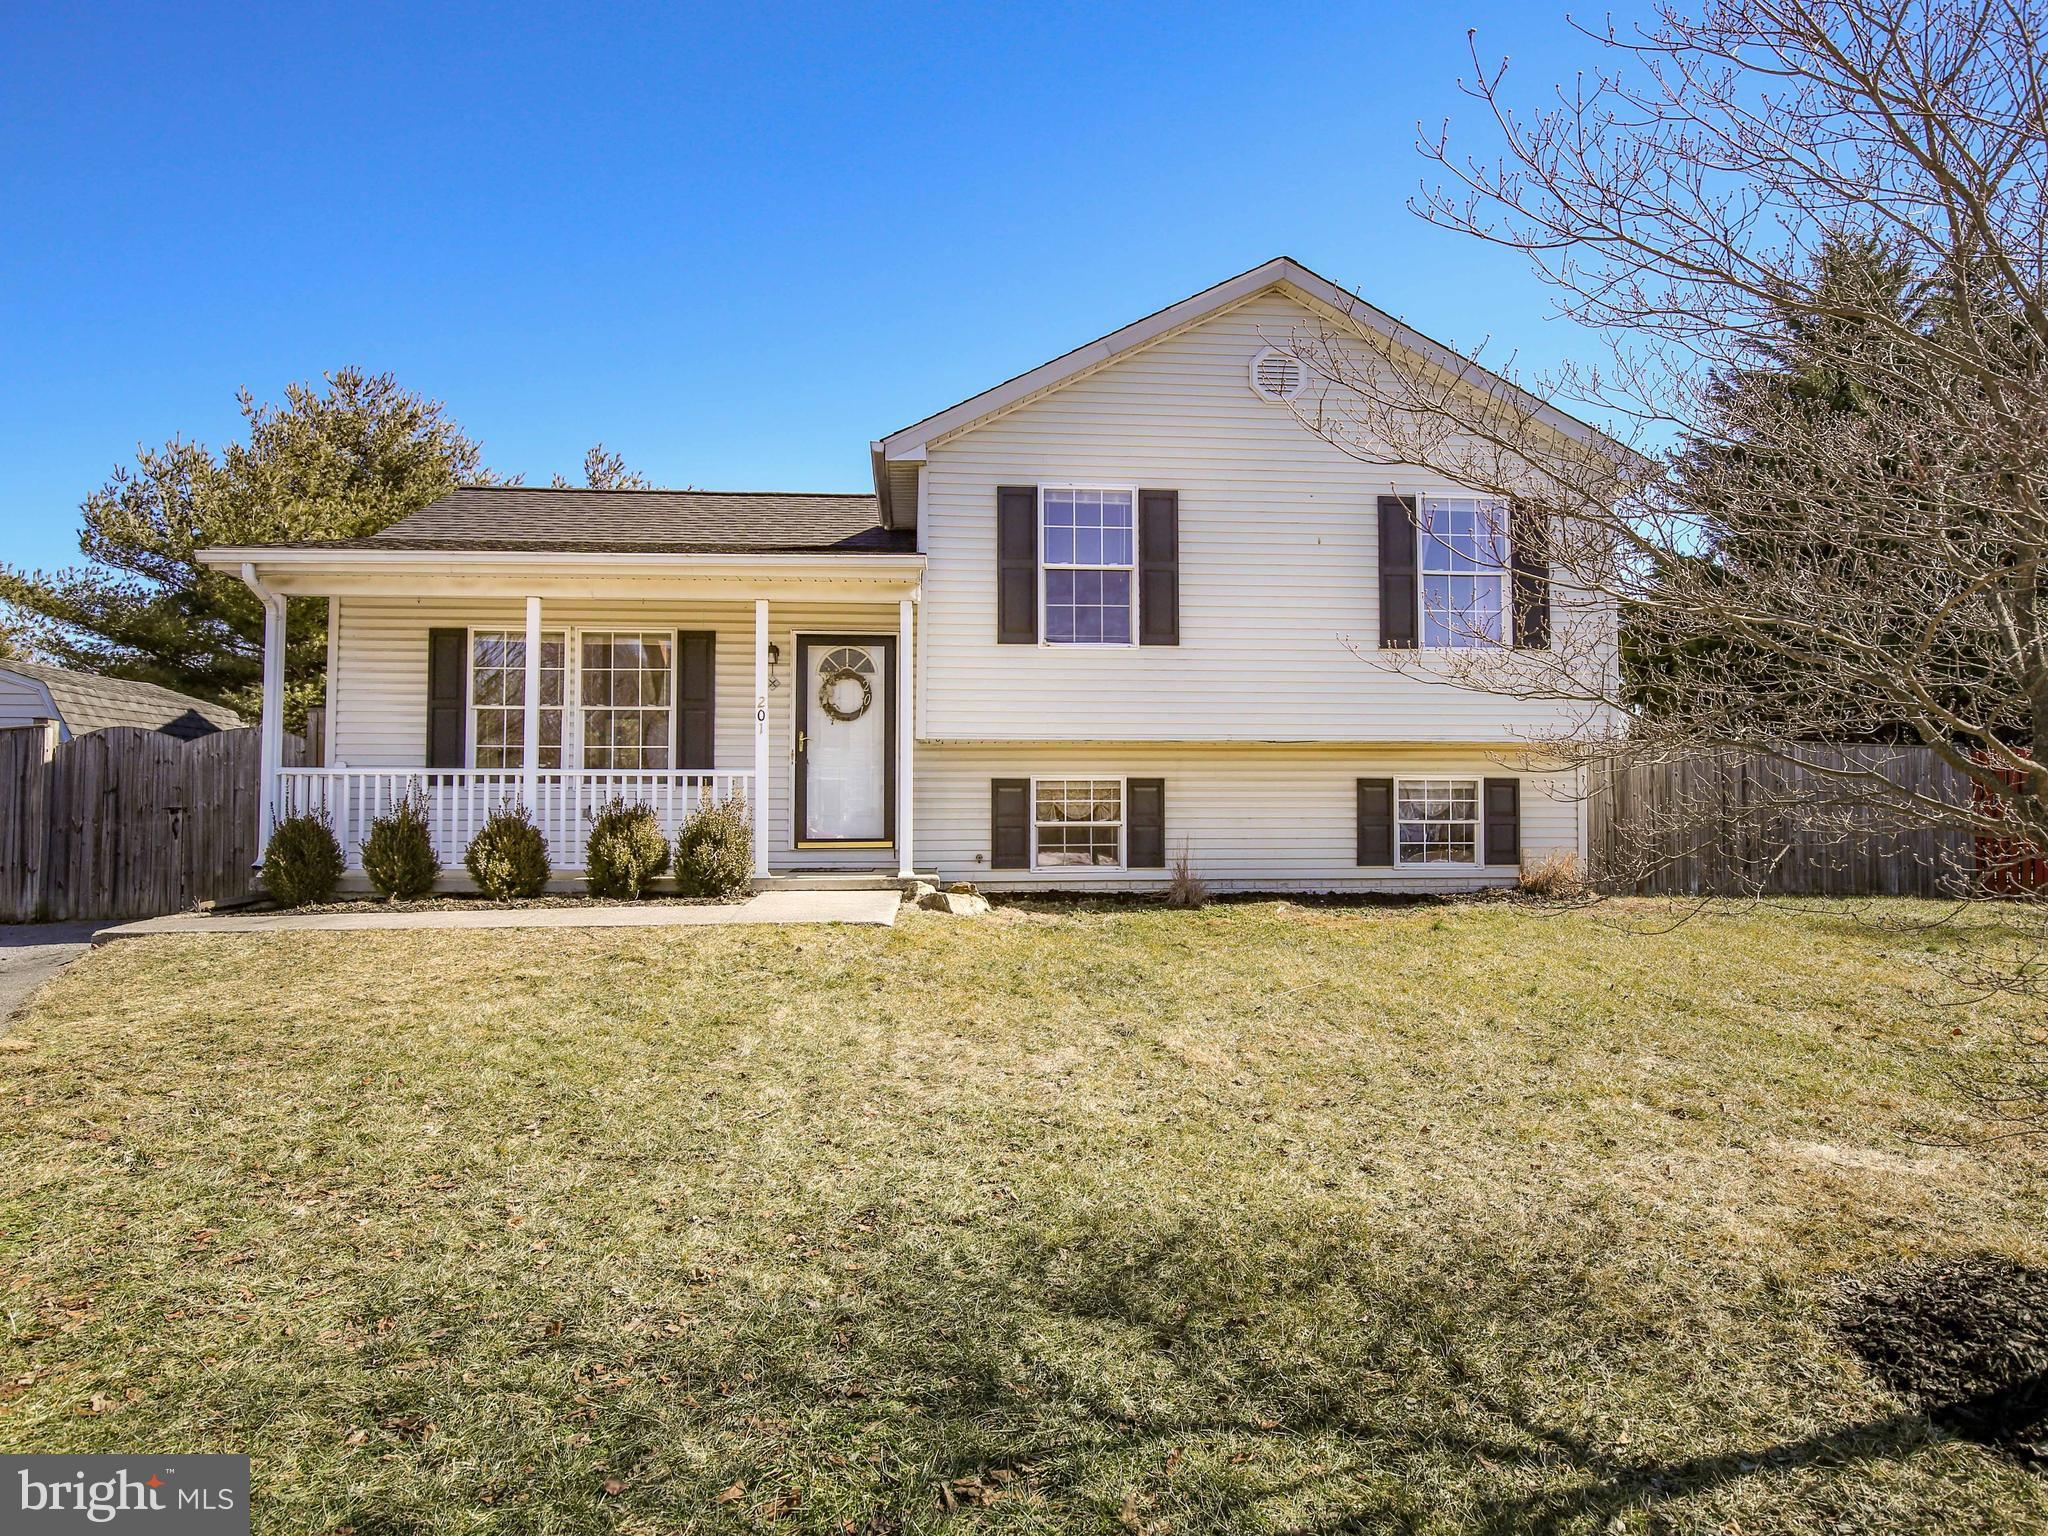 This efficient, light-filled home close to town can be yours!  Just outside of downtown Charles Town